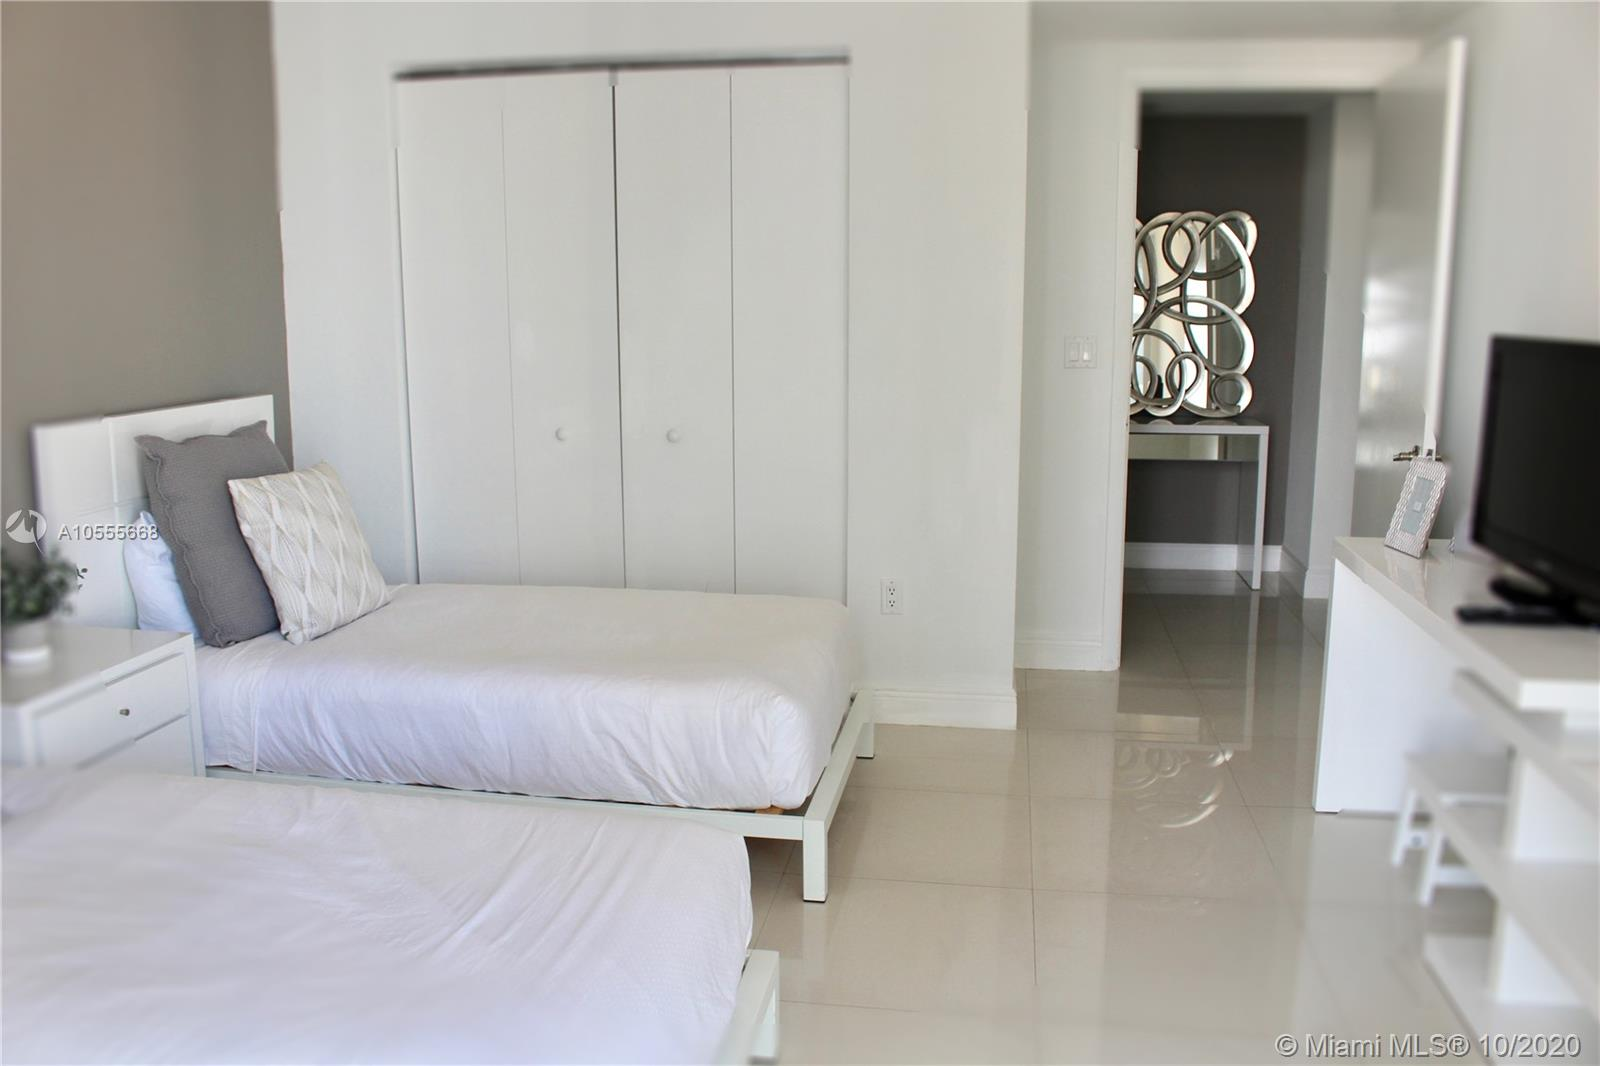 Welcome Home! Relax and Enjoy your stay in this gorgeous all-white modern 1 bedroom apartment located at the luxury Icon Brickell Tower three, where the W hotel is also located. CAN BE RENTED DAILY, WEEKLY OR MONTHLY. We provide our guests all they need to have a pampering experience (towels, bed sheets, glassware, cooking utensils, and more). Free Internet and more. Valet parking is included only in monthly rentals. Contact Us for weekly and daily rates. ***Prices may vary depending on the season and taxes may apply. + Cleaning Fee